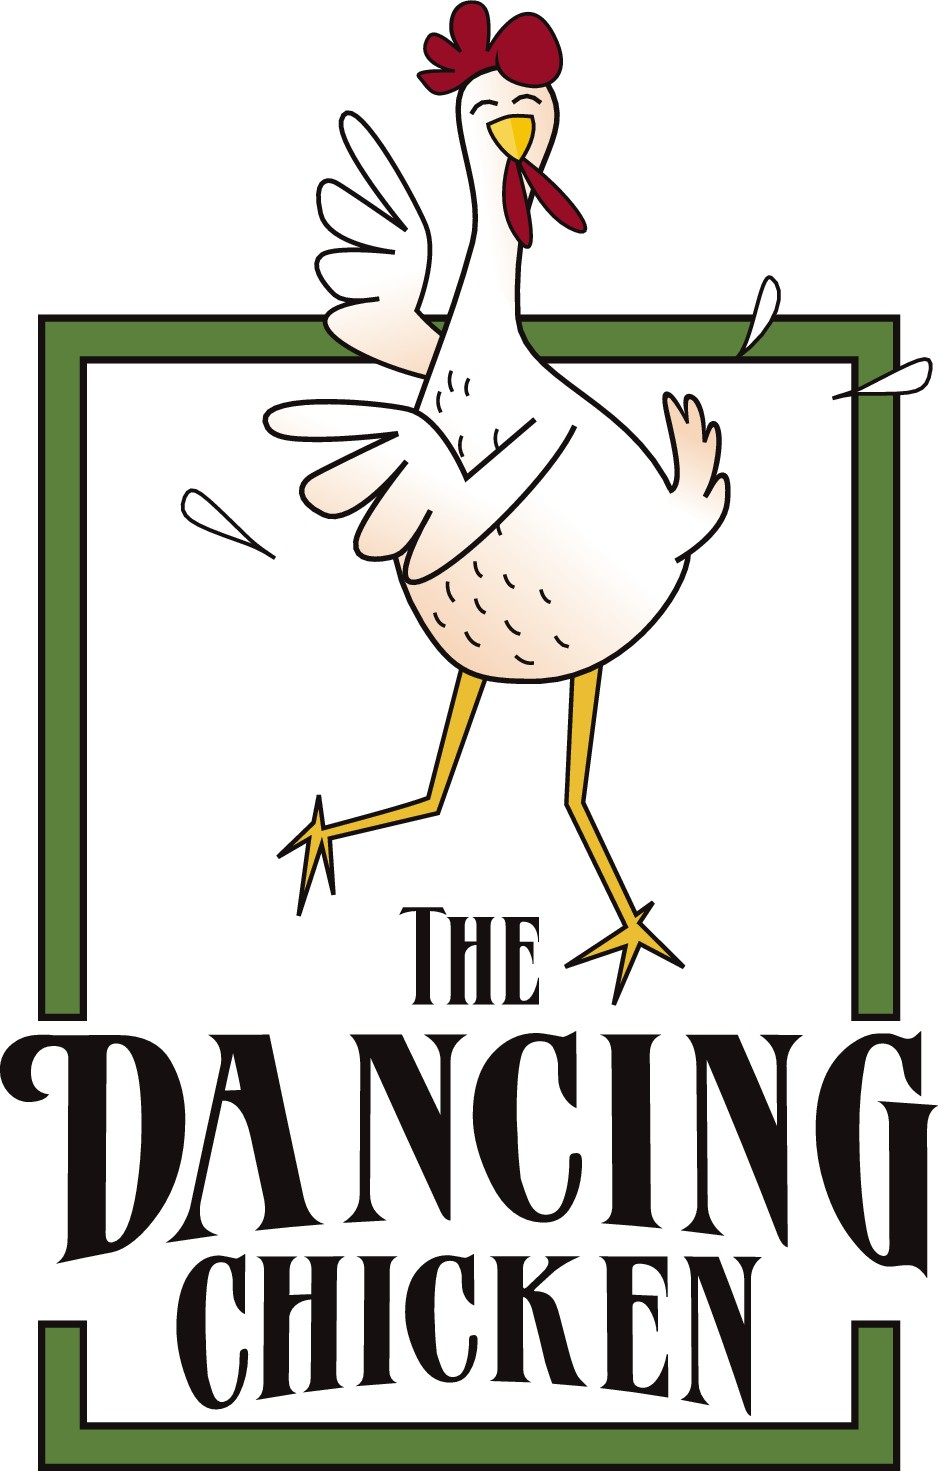 Create a fun, colourful logo for our new cafe and local grocer, The Dancing Chicken